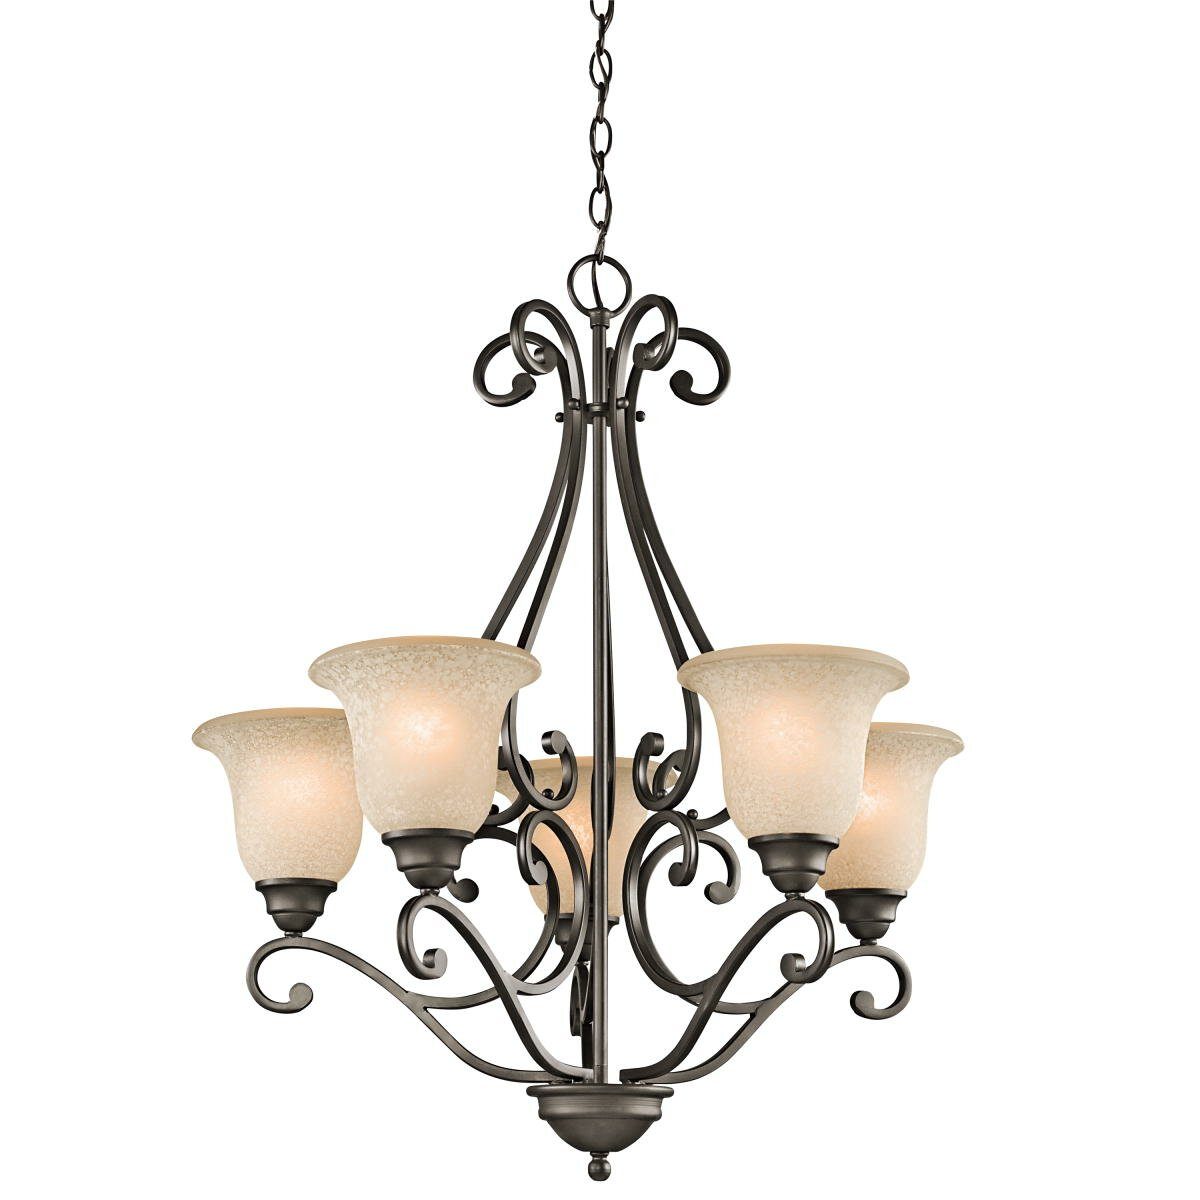 Kichler camerena 5 light chandelier reviews wayfair - Lighting and chandeliers ...